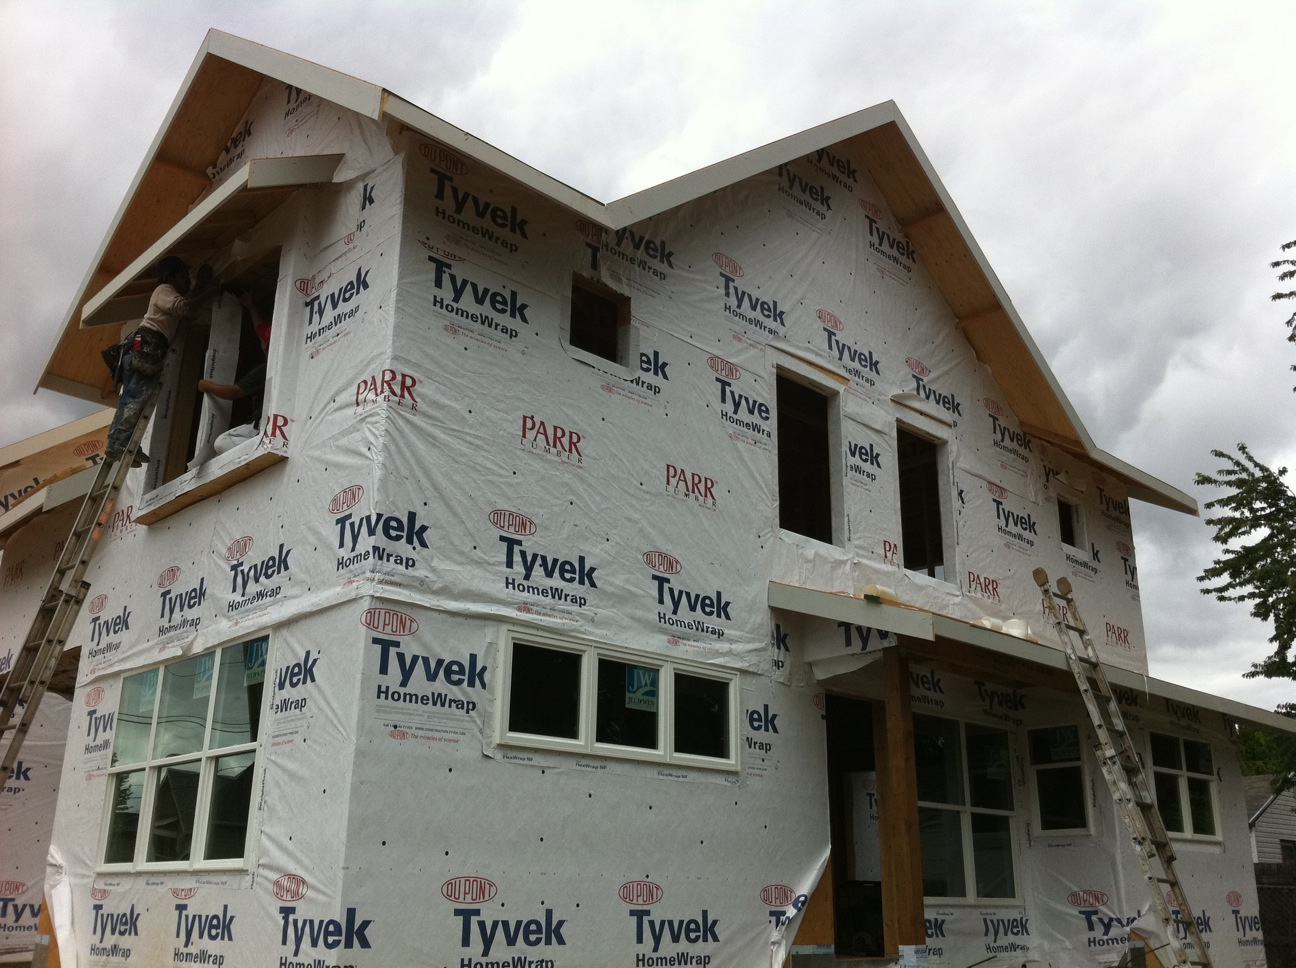 Exeter and adriatic affordable homeownership 2010 for Affordable home construction